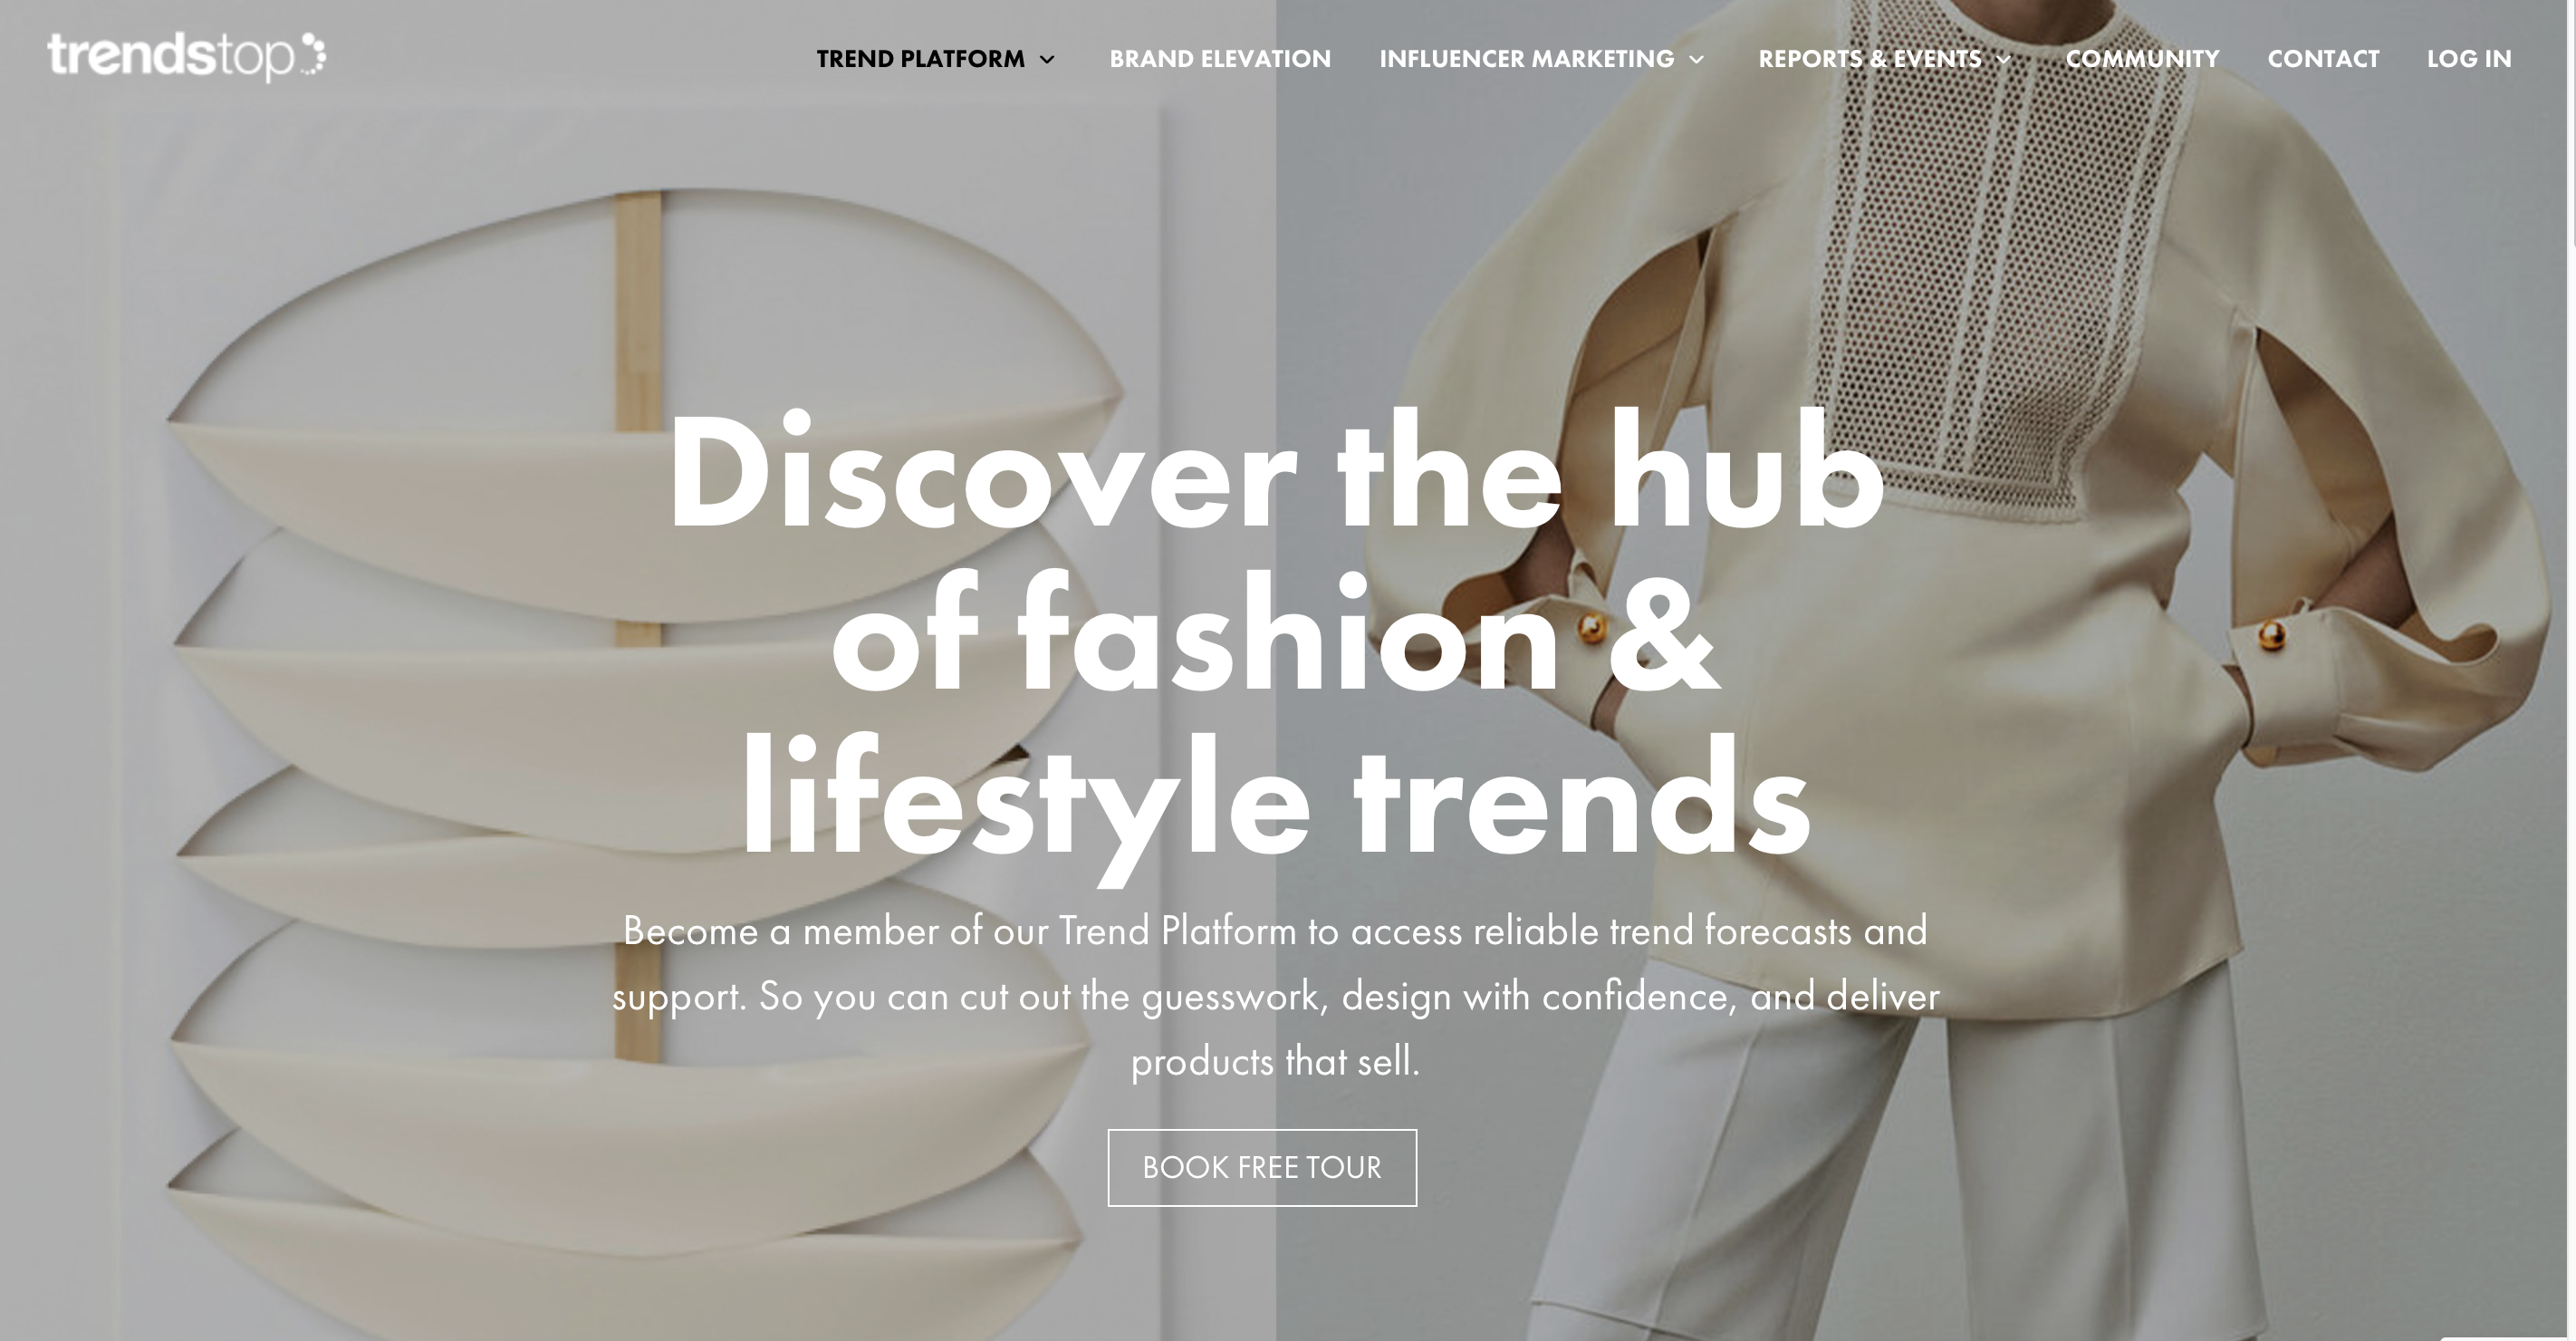 Leading Trend Agency, Trendstop.com launches new Influencer Marketing Platform for Fashion and Lifestyle Brands